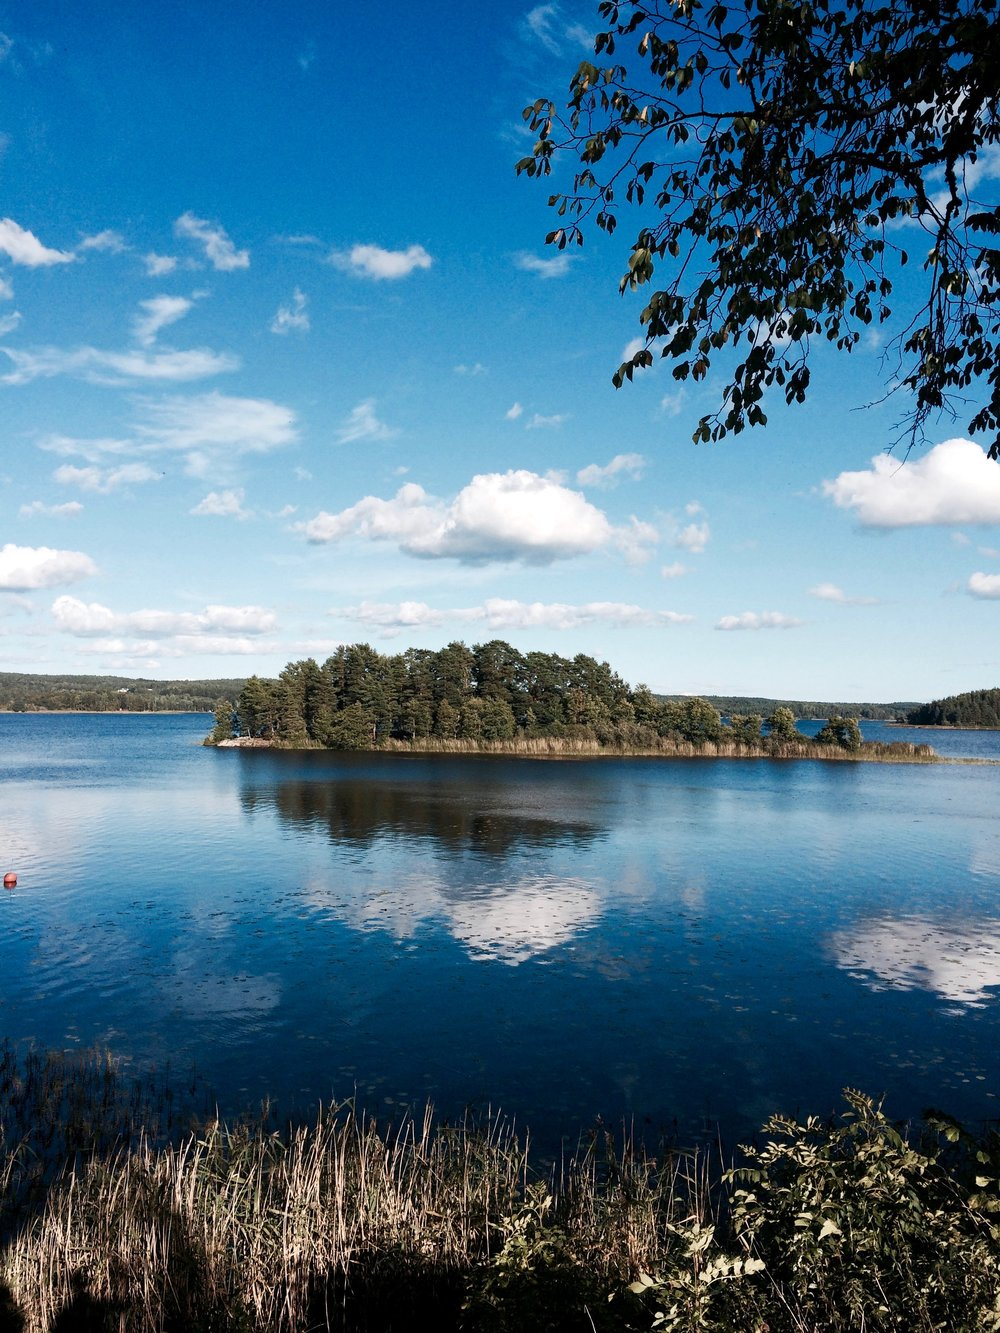 One of the many beautiful lakes in the southern region of Sweden